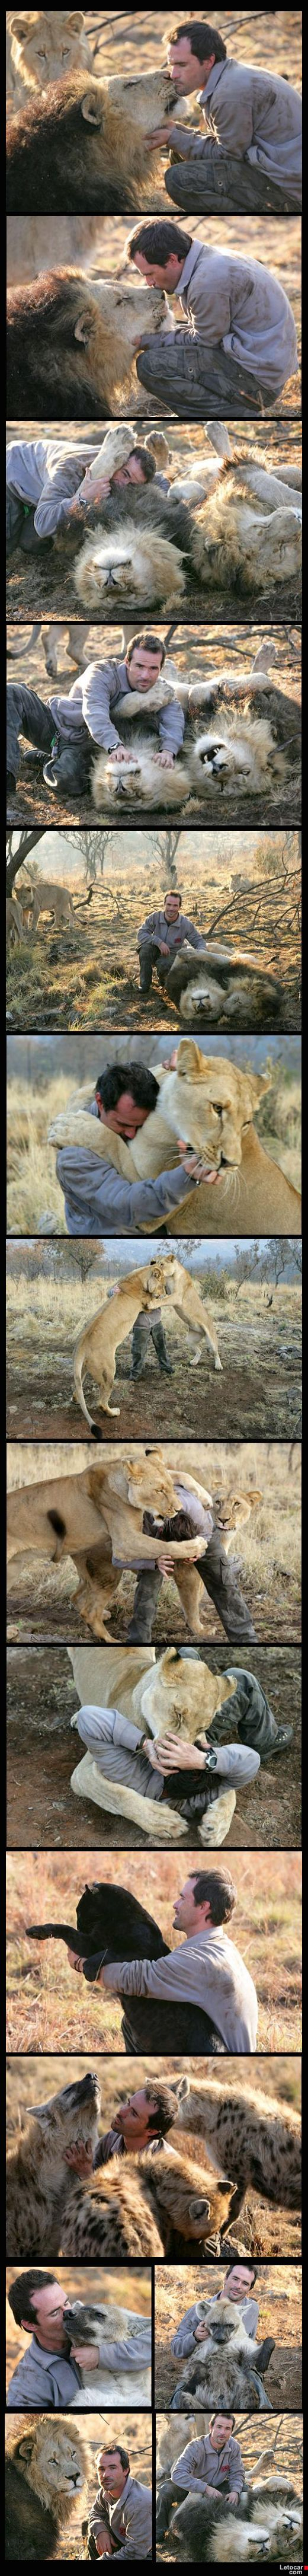 The Lion Whisperer South Africa - this is amazing, wish i could do this